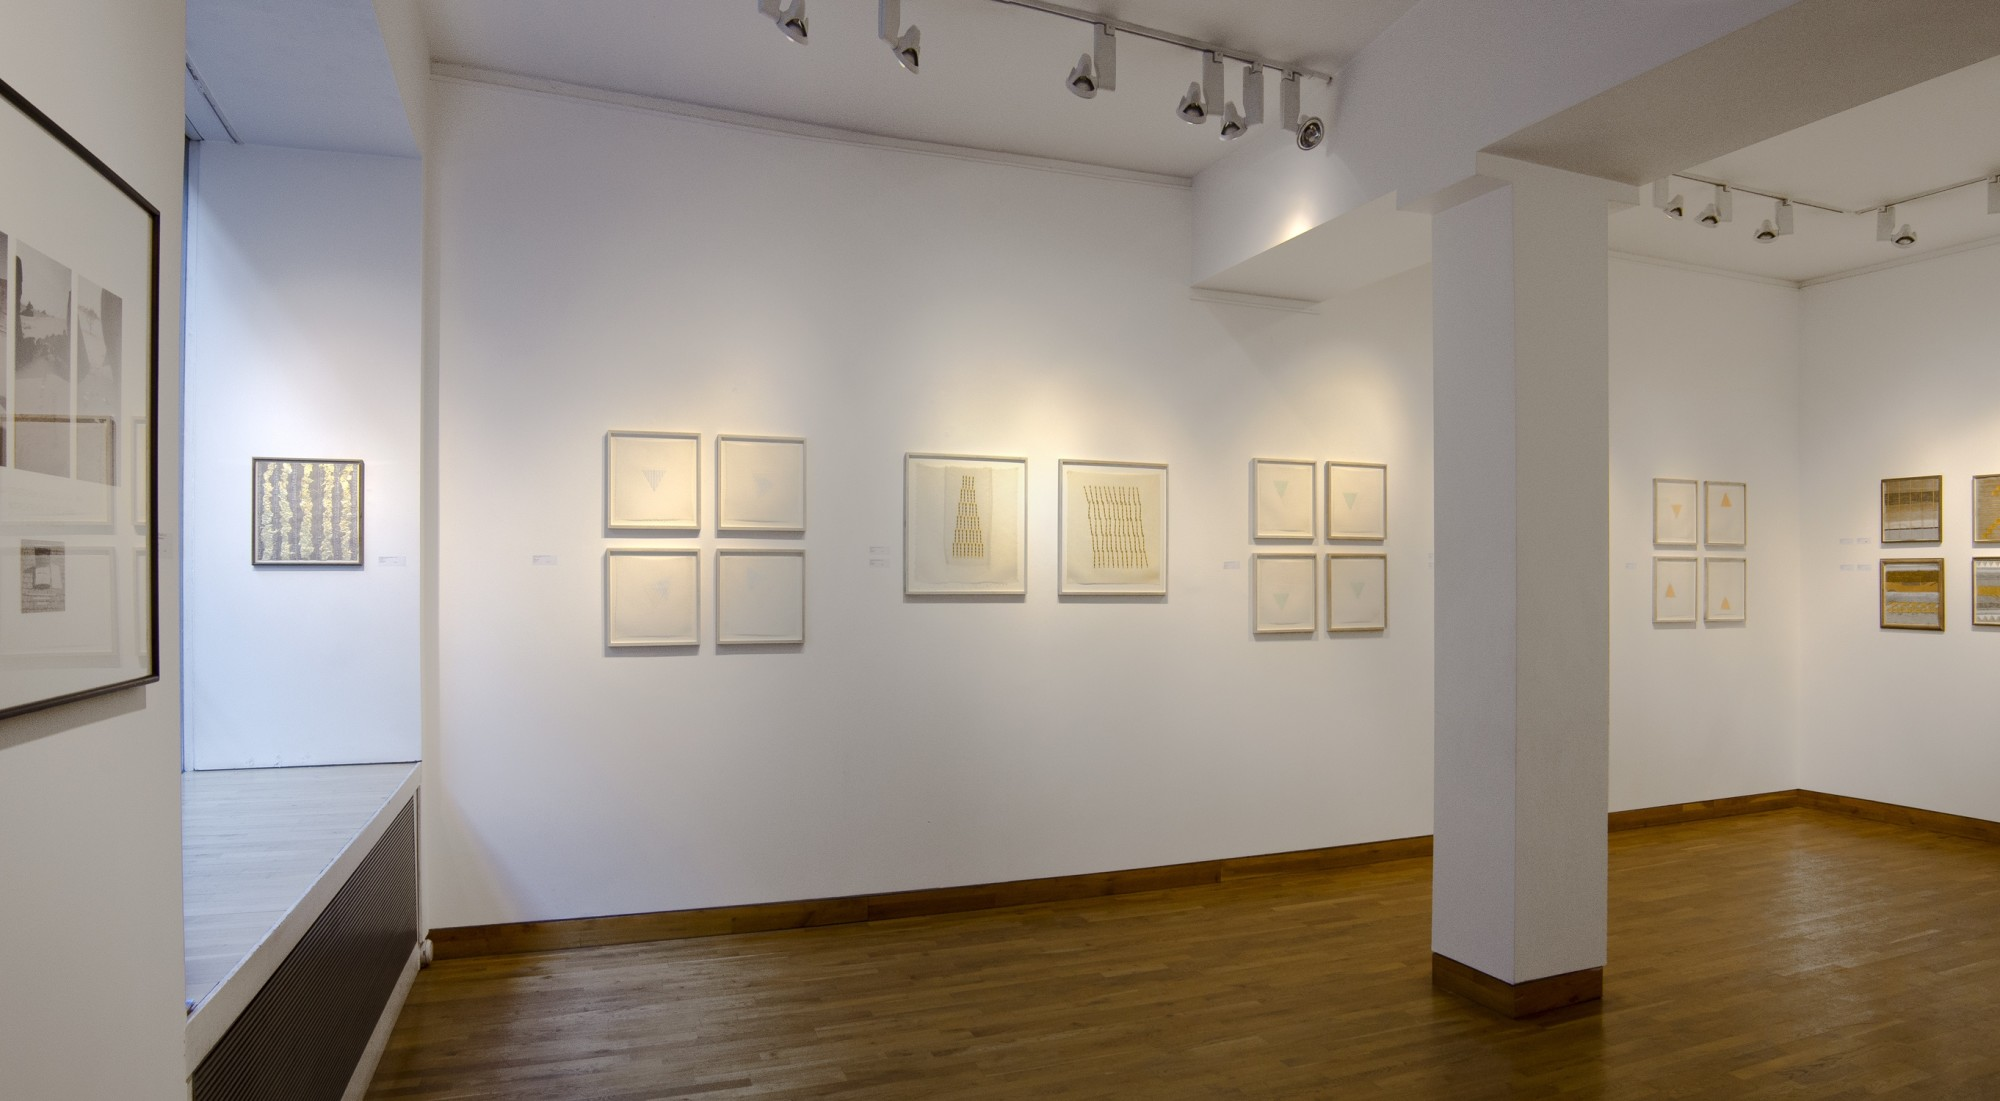 """<span class=""""link fancybox-details-link""""><a href=""""/exhibitions/66/works/image_standalone141/"""">View Detail Page</a></span><p>MARISCHA BURCKHARDT 